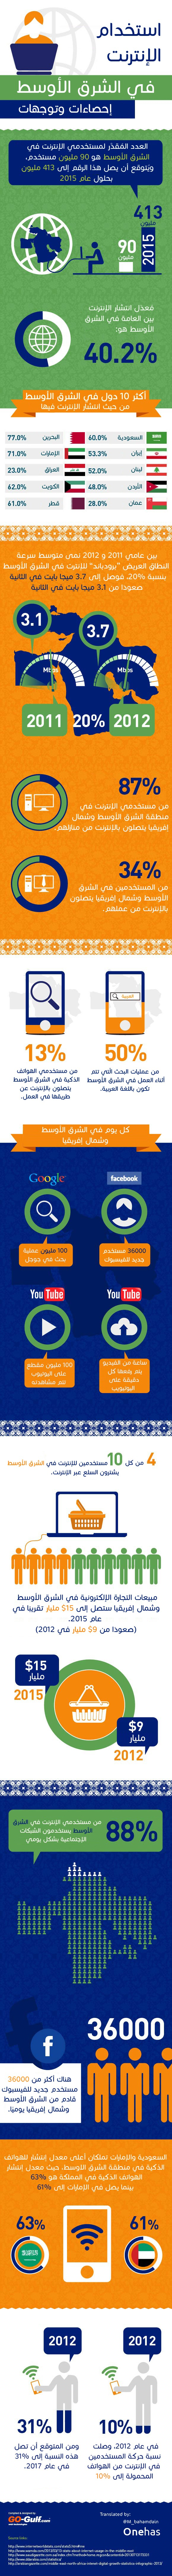 internet-usage-middle-east-arabic